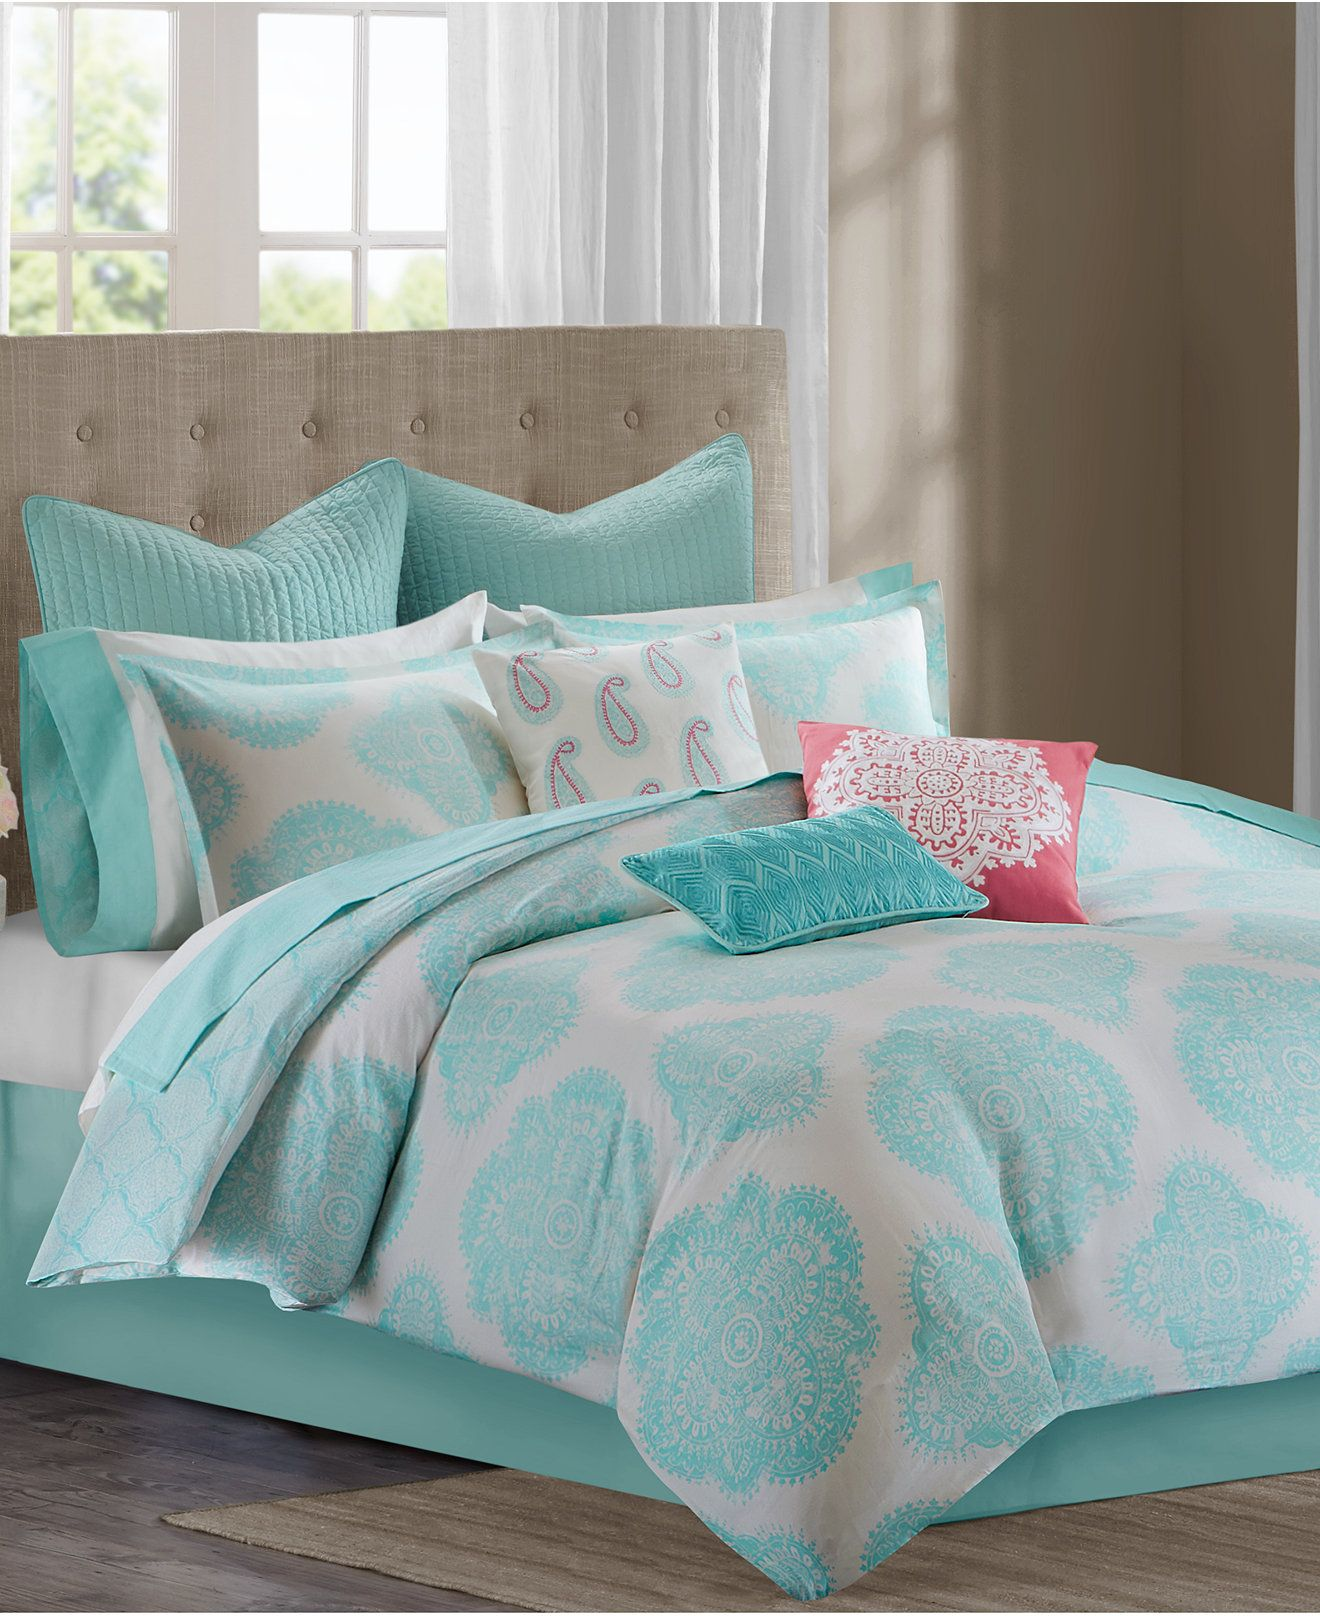 design bdbf over shipping multi mykonos bedding overstock comforter bath cotton orders set on bed free echo product